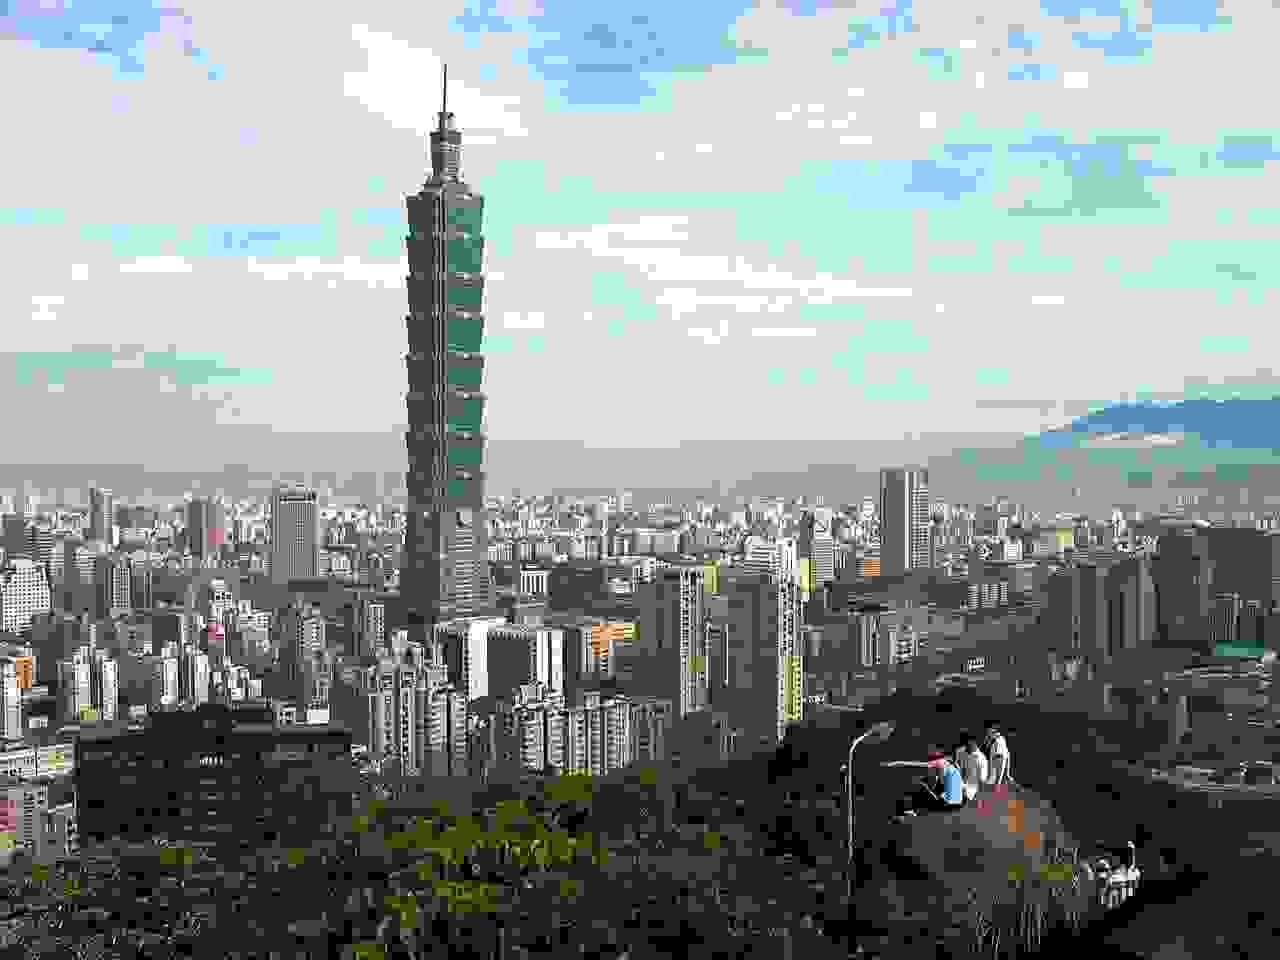 Taipei 101 from afar